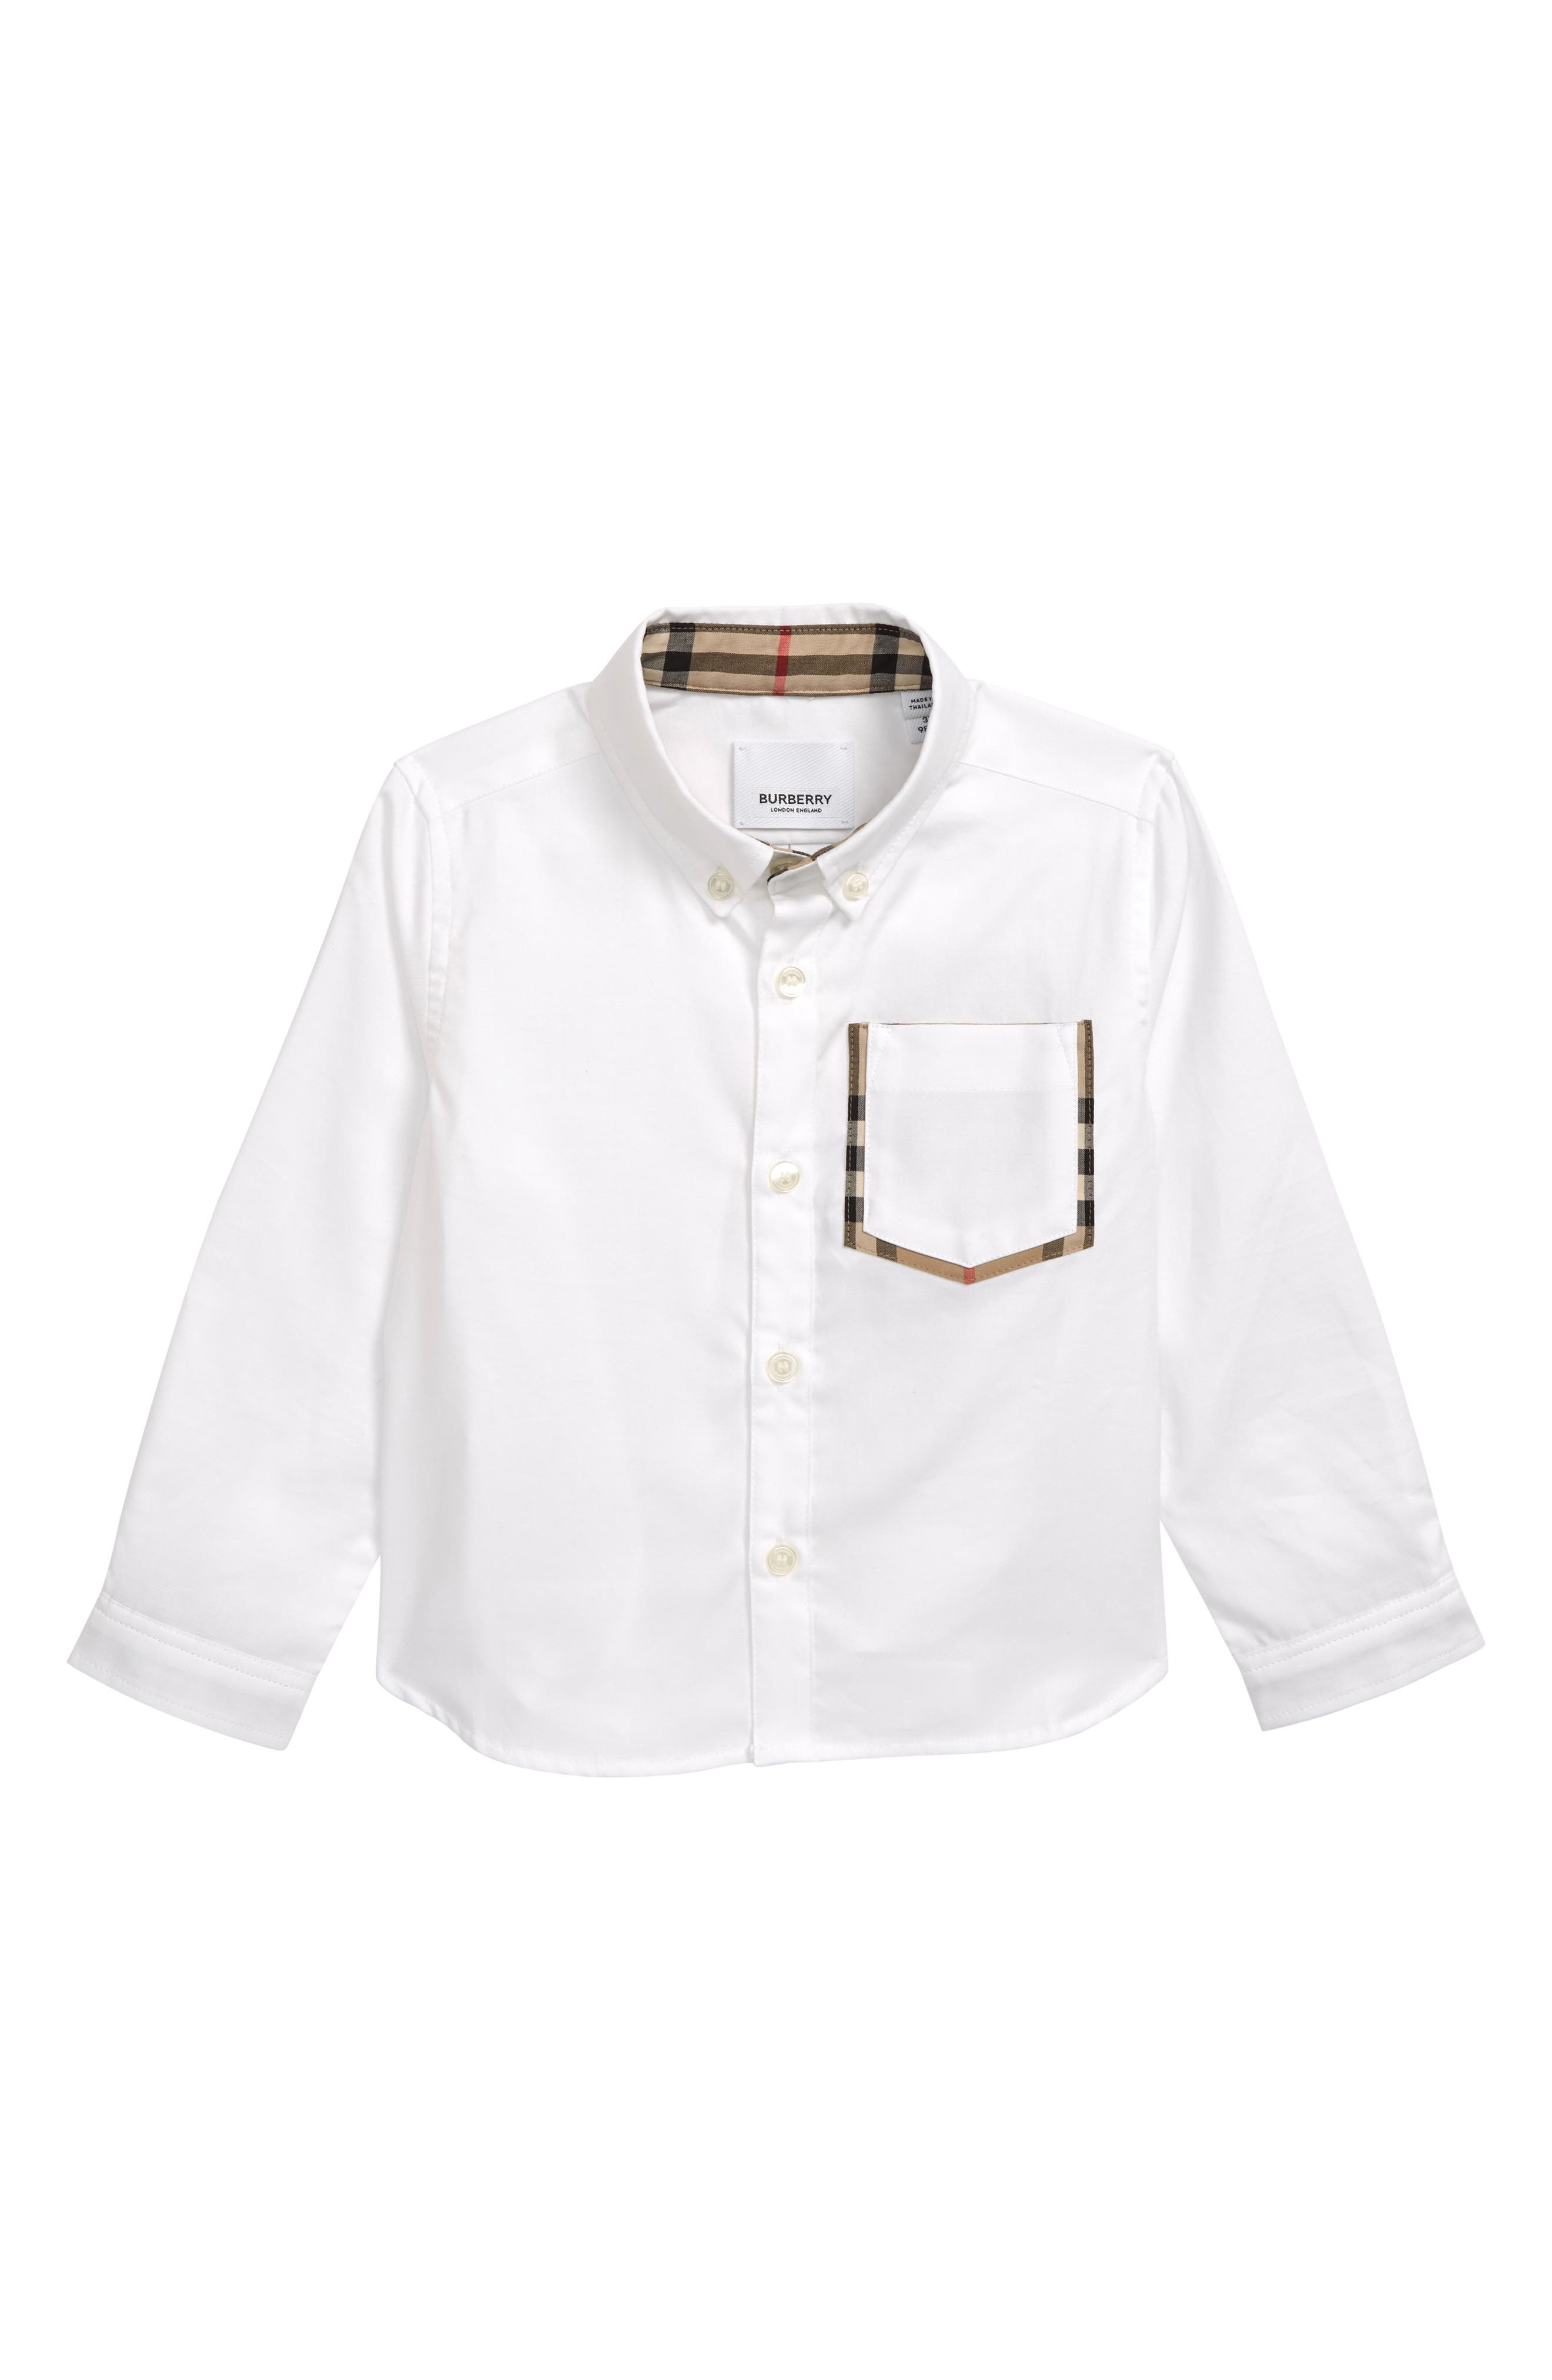 a165cb91c2b Burberry for Kids  Clothing   Accessories